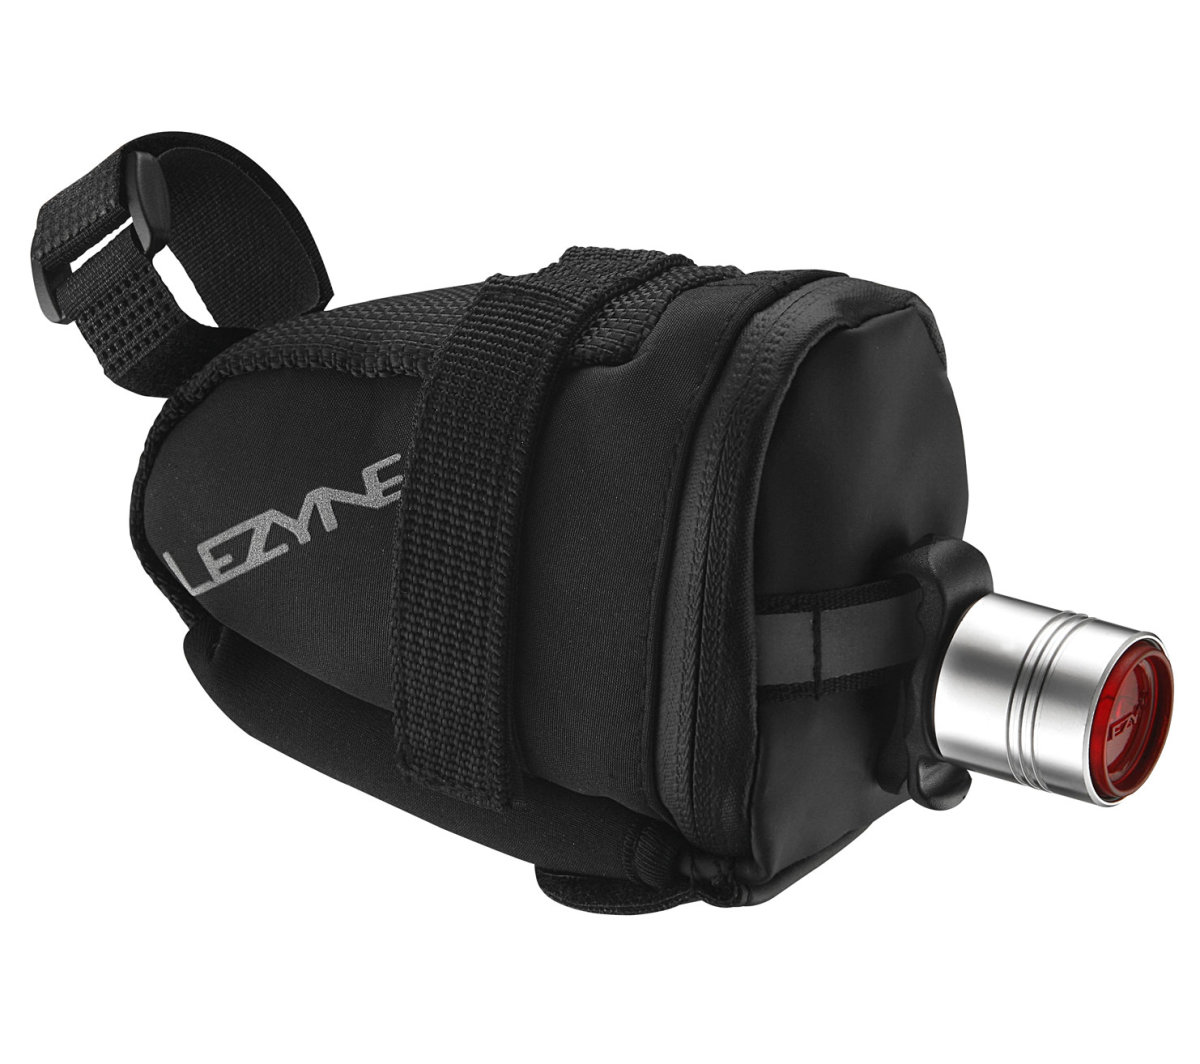 Мигалка задняя Lezyne LED FEMTO DRIVE REAR black Lezyne LED FEMTO DRIVE REAR bag